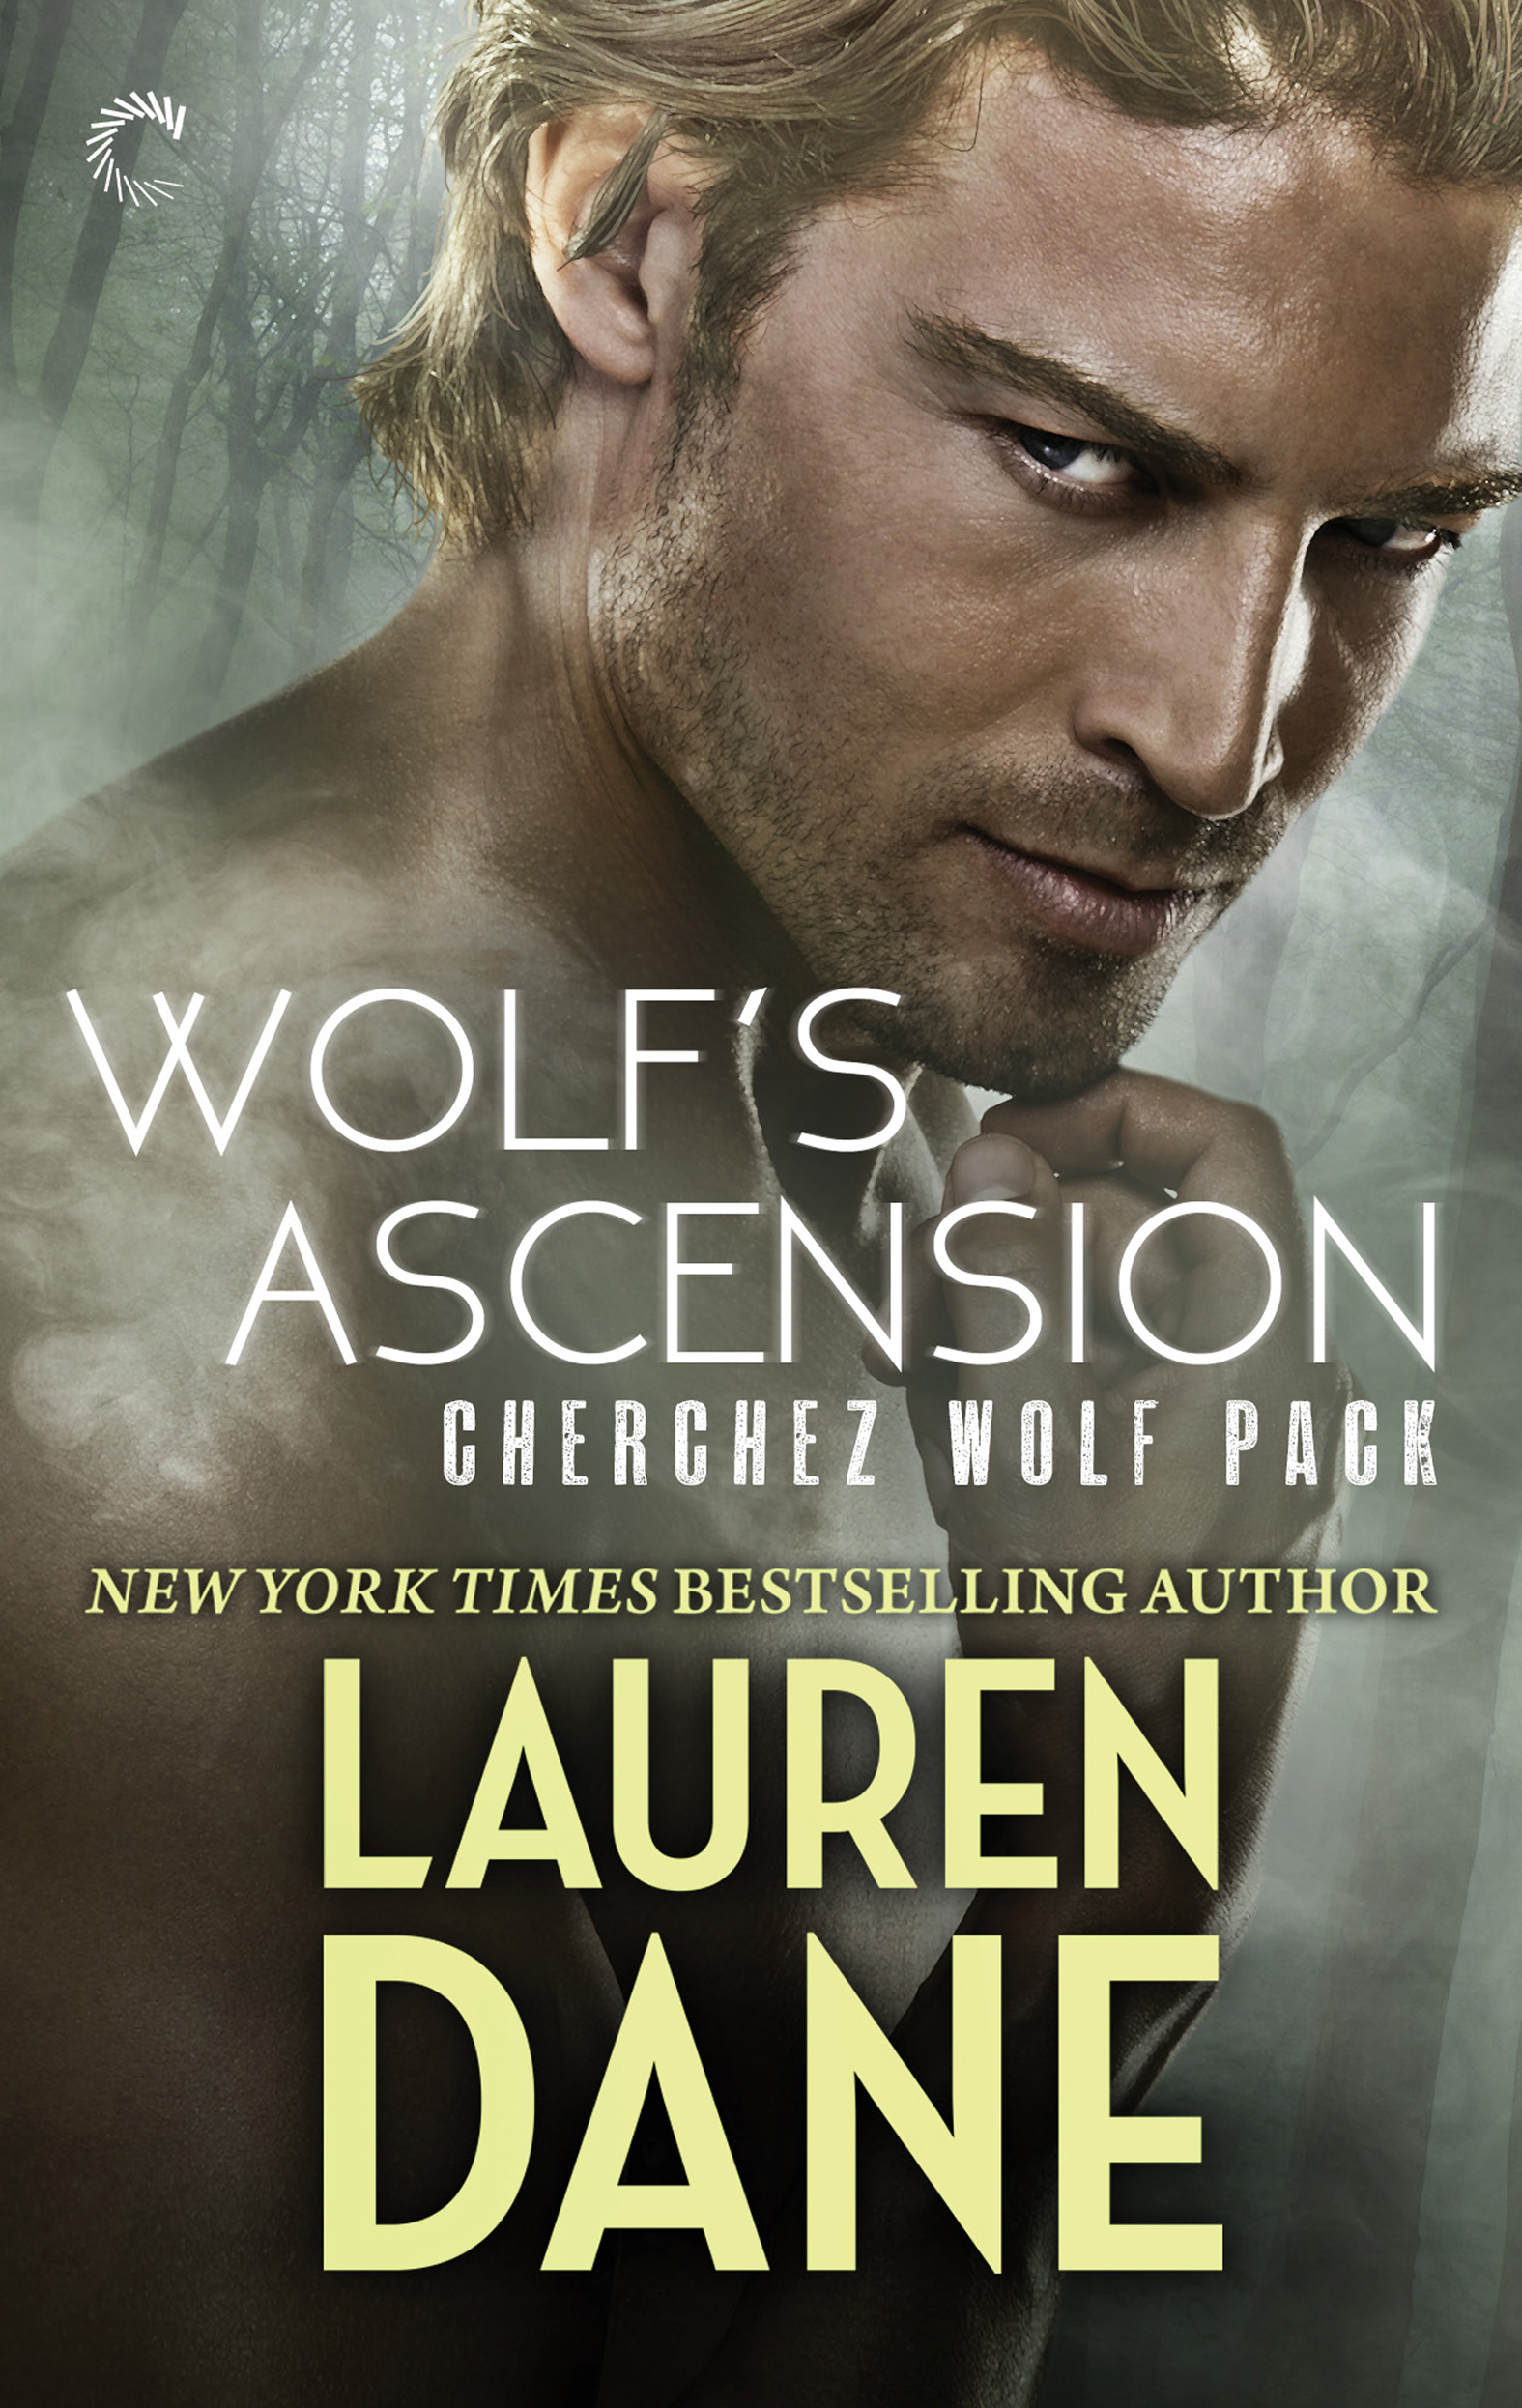 Wolf's Ascension (2016) by Lauren Dane